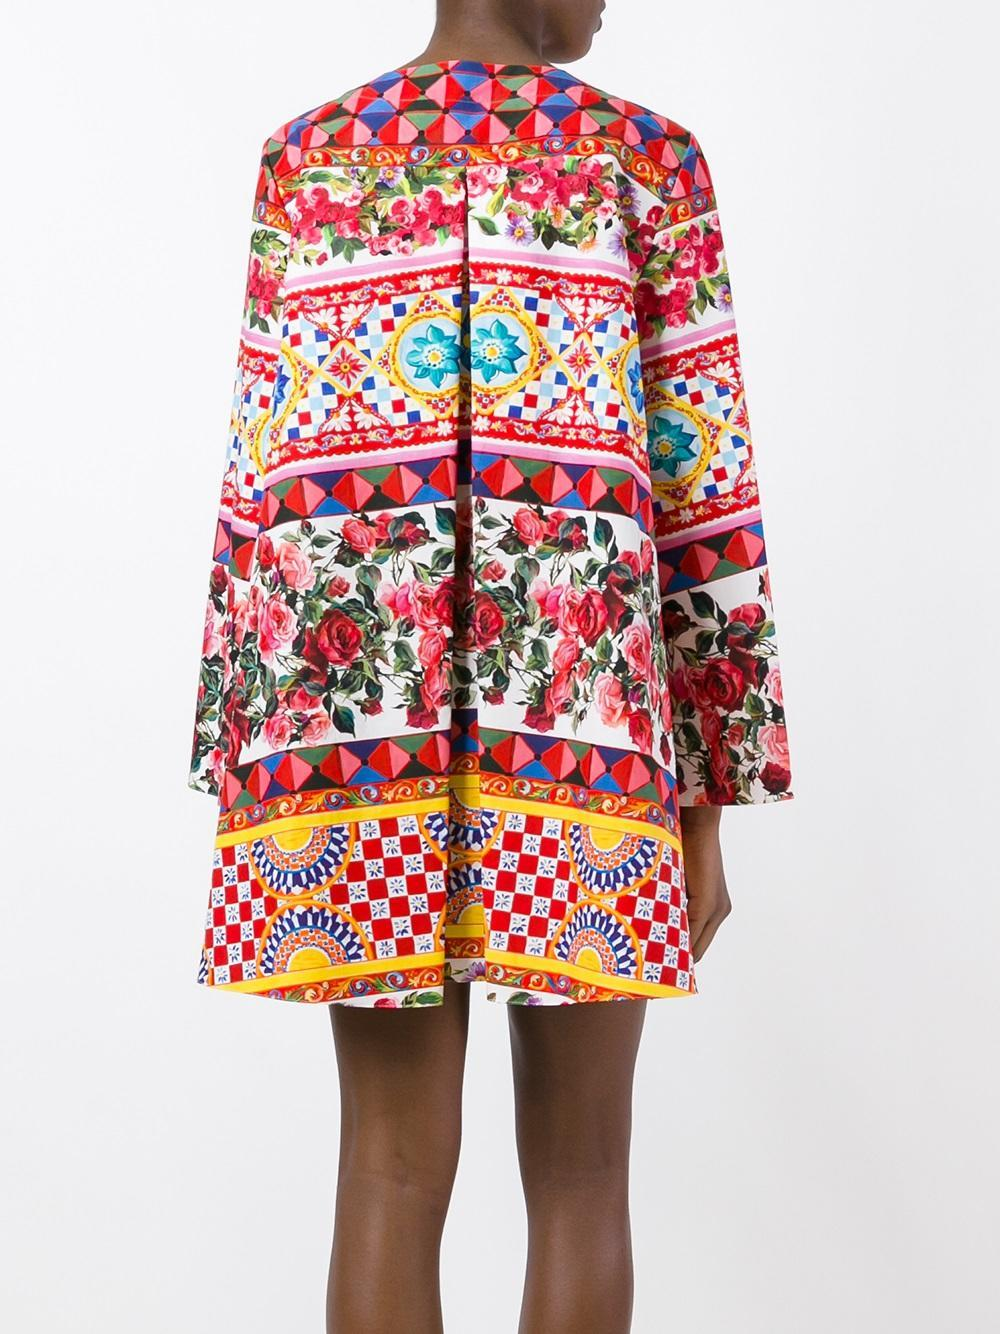 Dolce & gabbana - Mambo Print Flared Dress